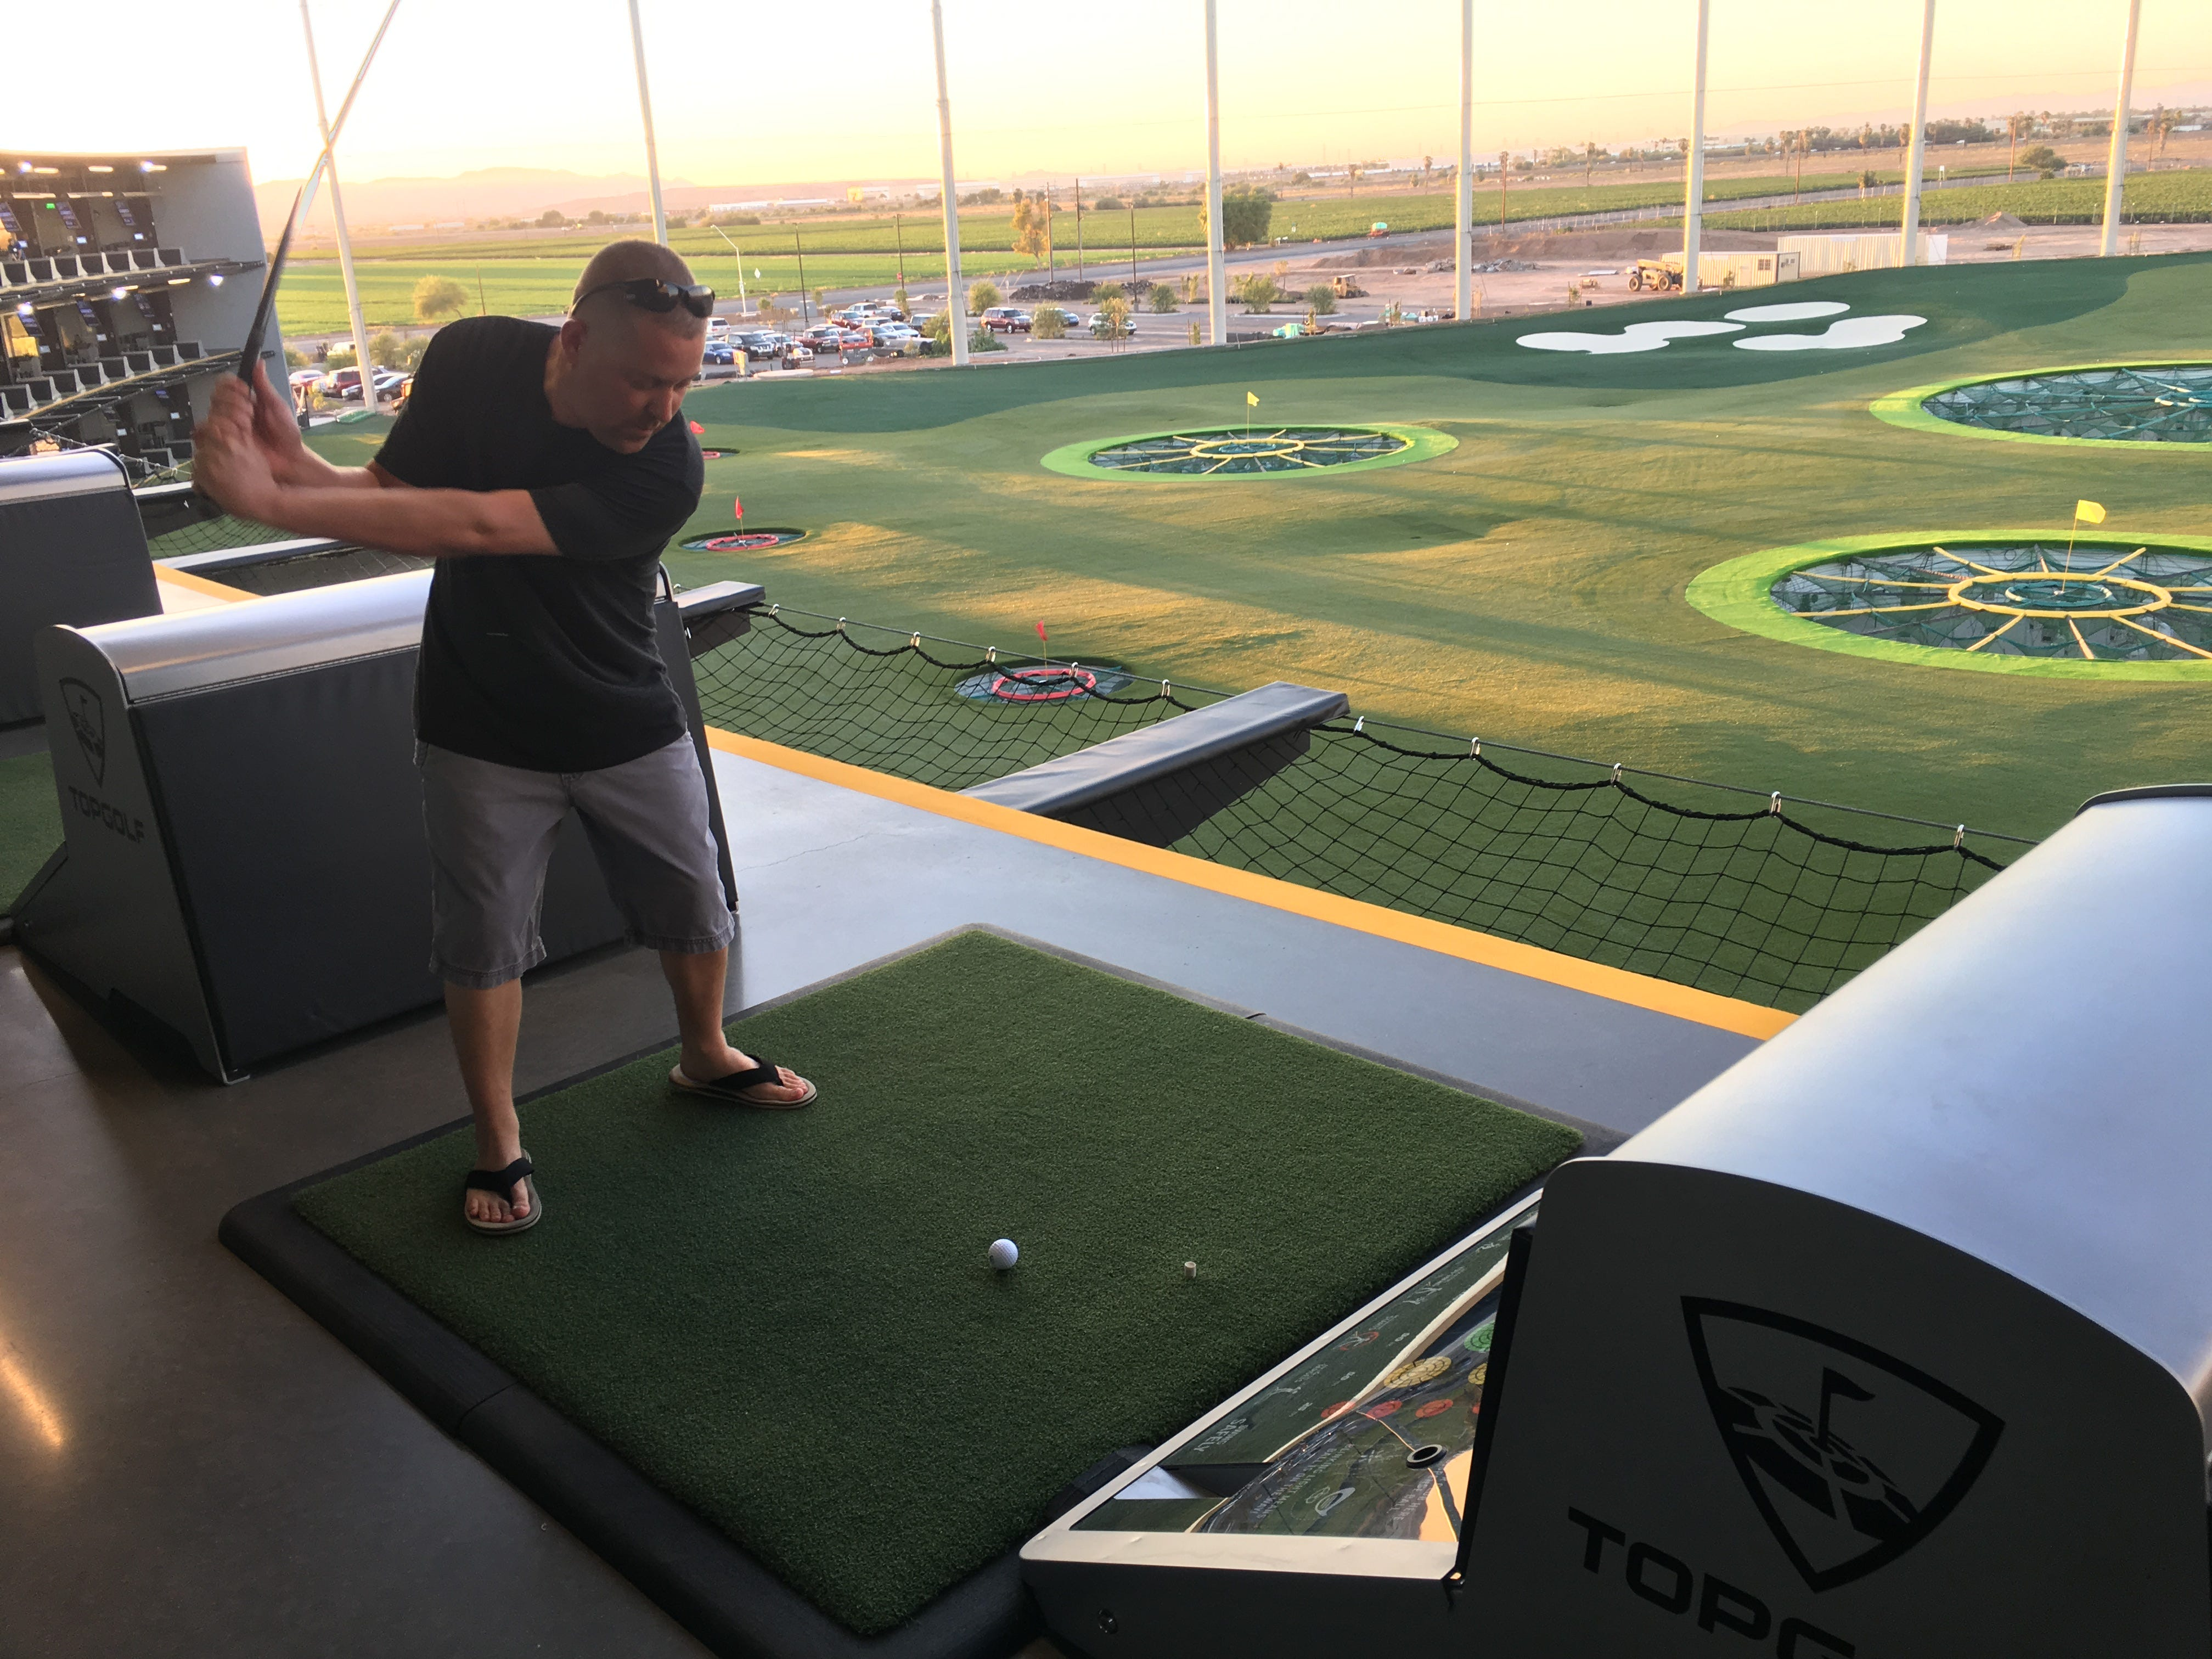 Buckeye resident Casey Stanfield lines up a shot from one of Topgolf Glendale's hitting bays during a tour Sept. 12, 2018, of the newest Valley location near State Farm Stadium. Topgolf Glendale is scheduled to open in September.